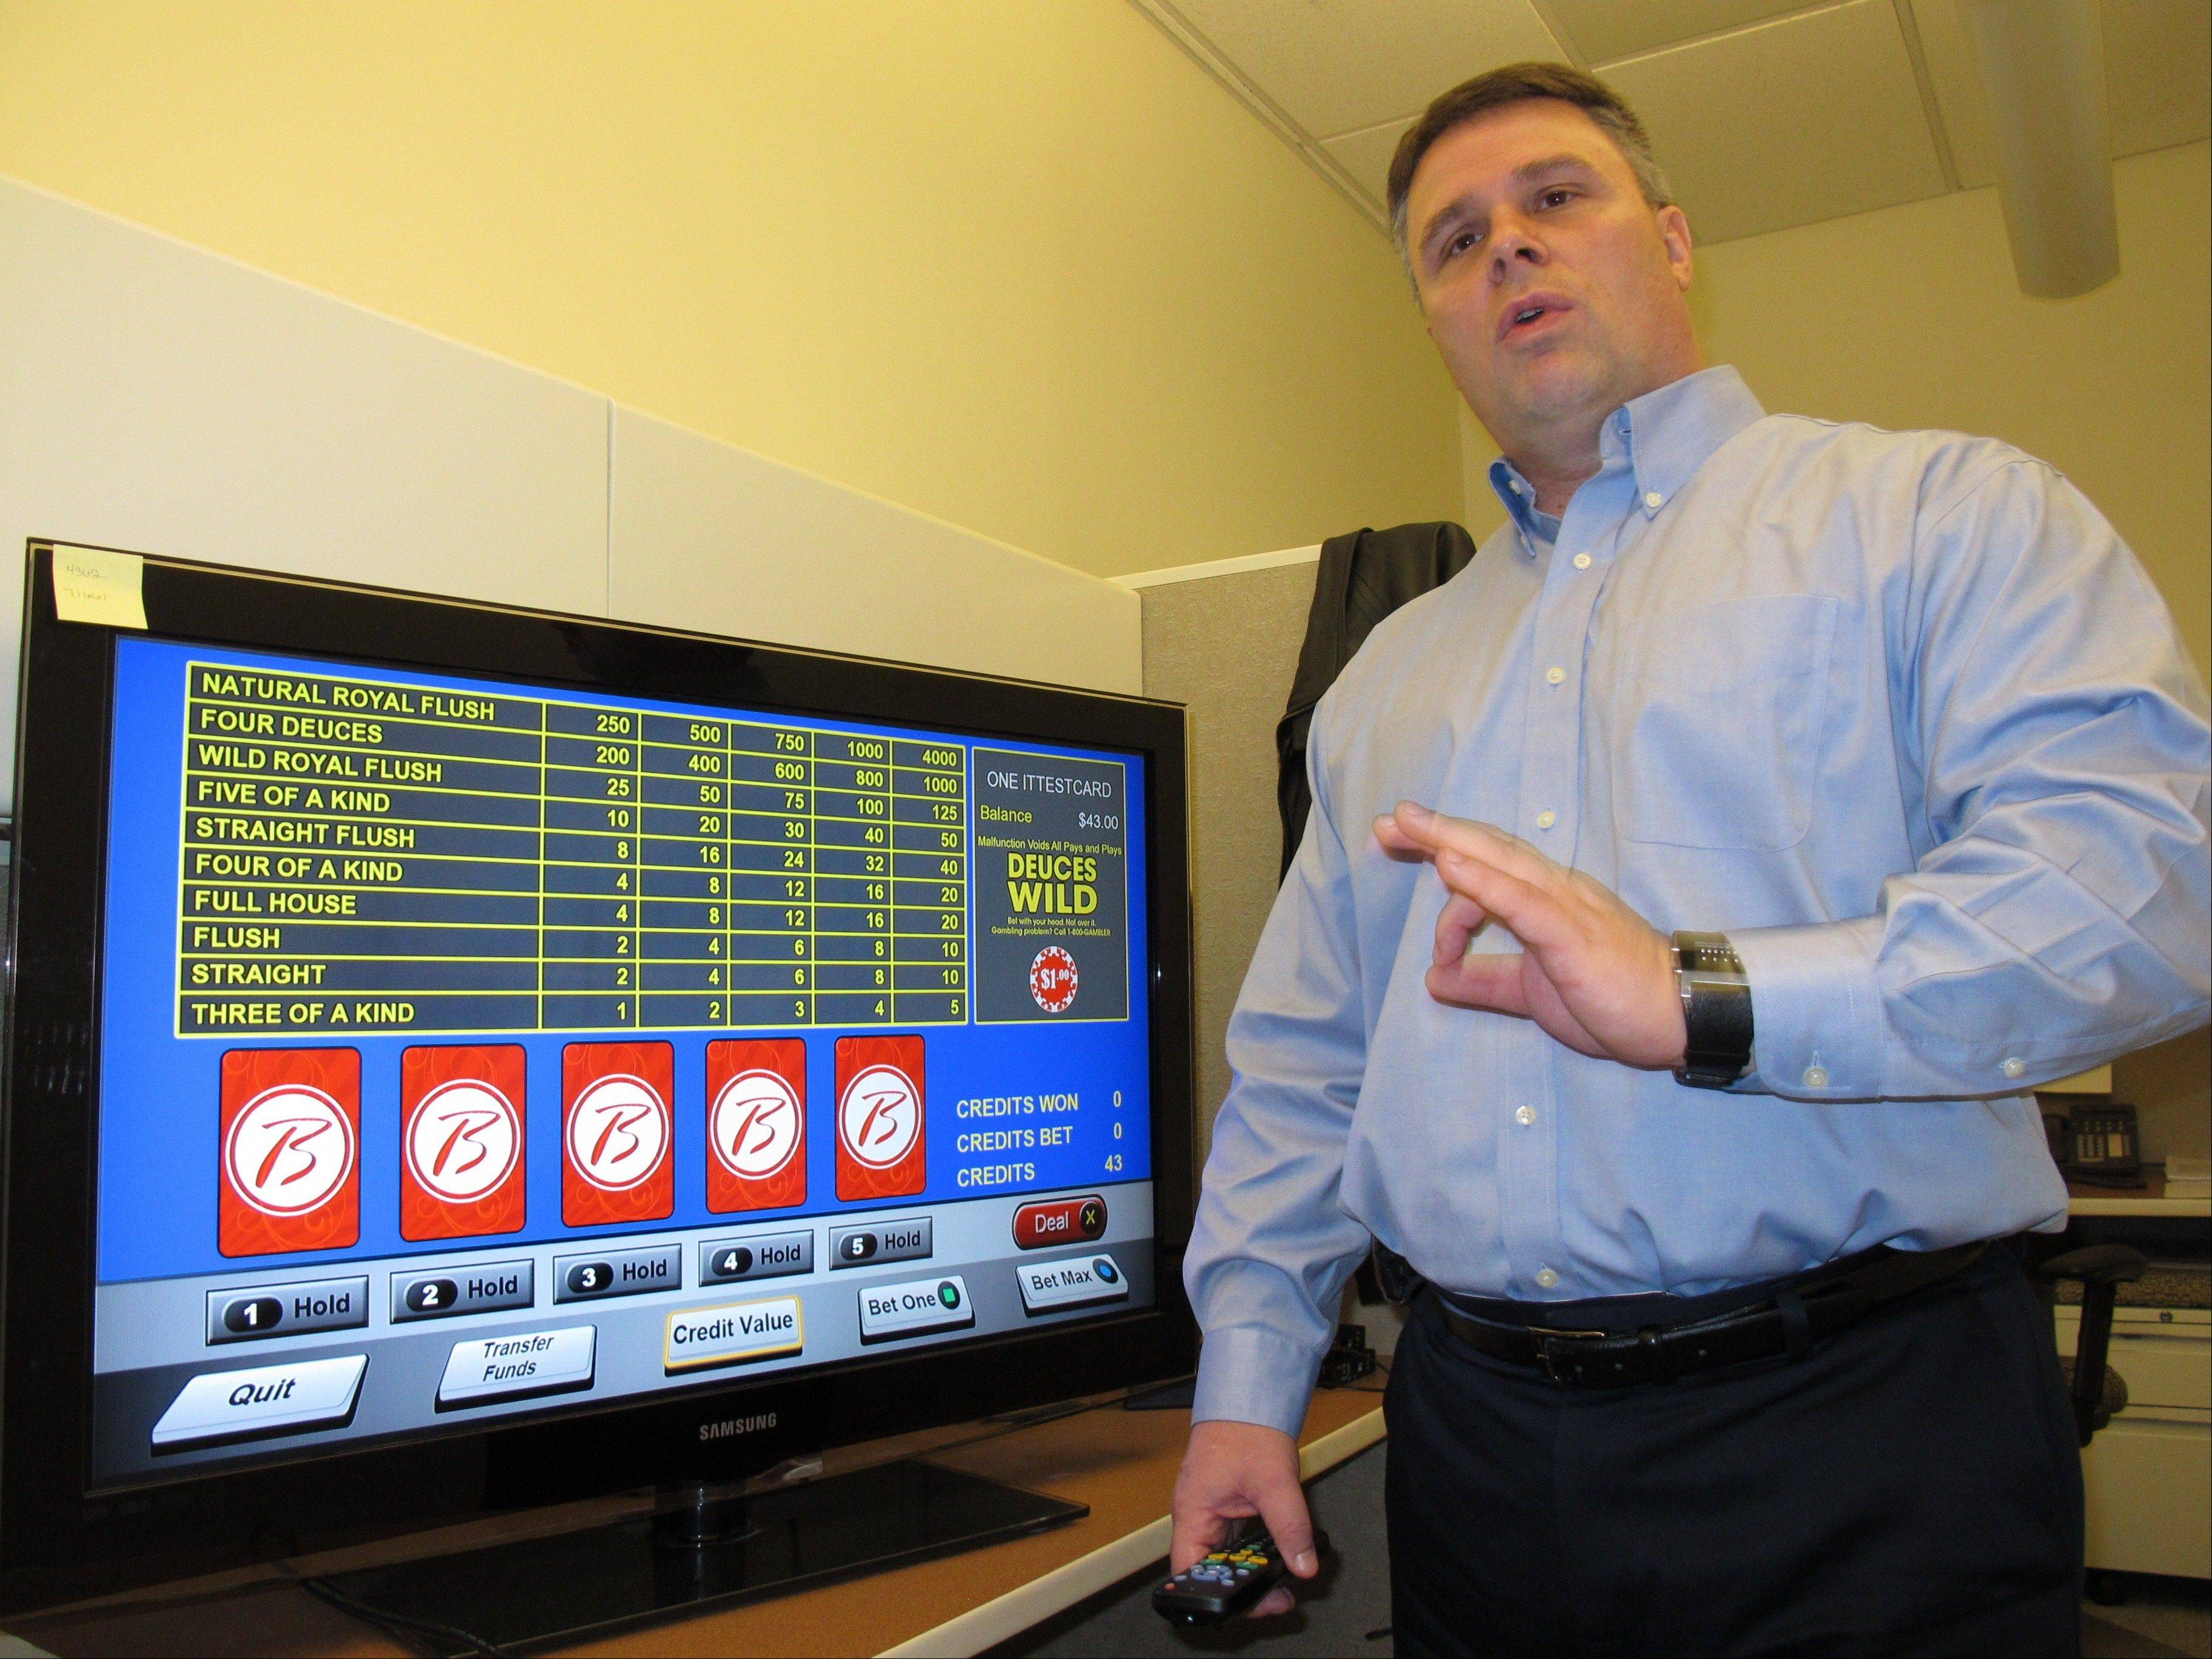 John Forelli, a vice presicent at the Borgata Hotel Casino & Spa in Atlantic City, demonstrates a new in-room gambling system Monday. The casino says it is the first in the nation to offer this technology.